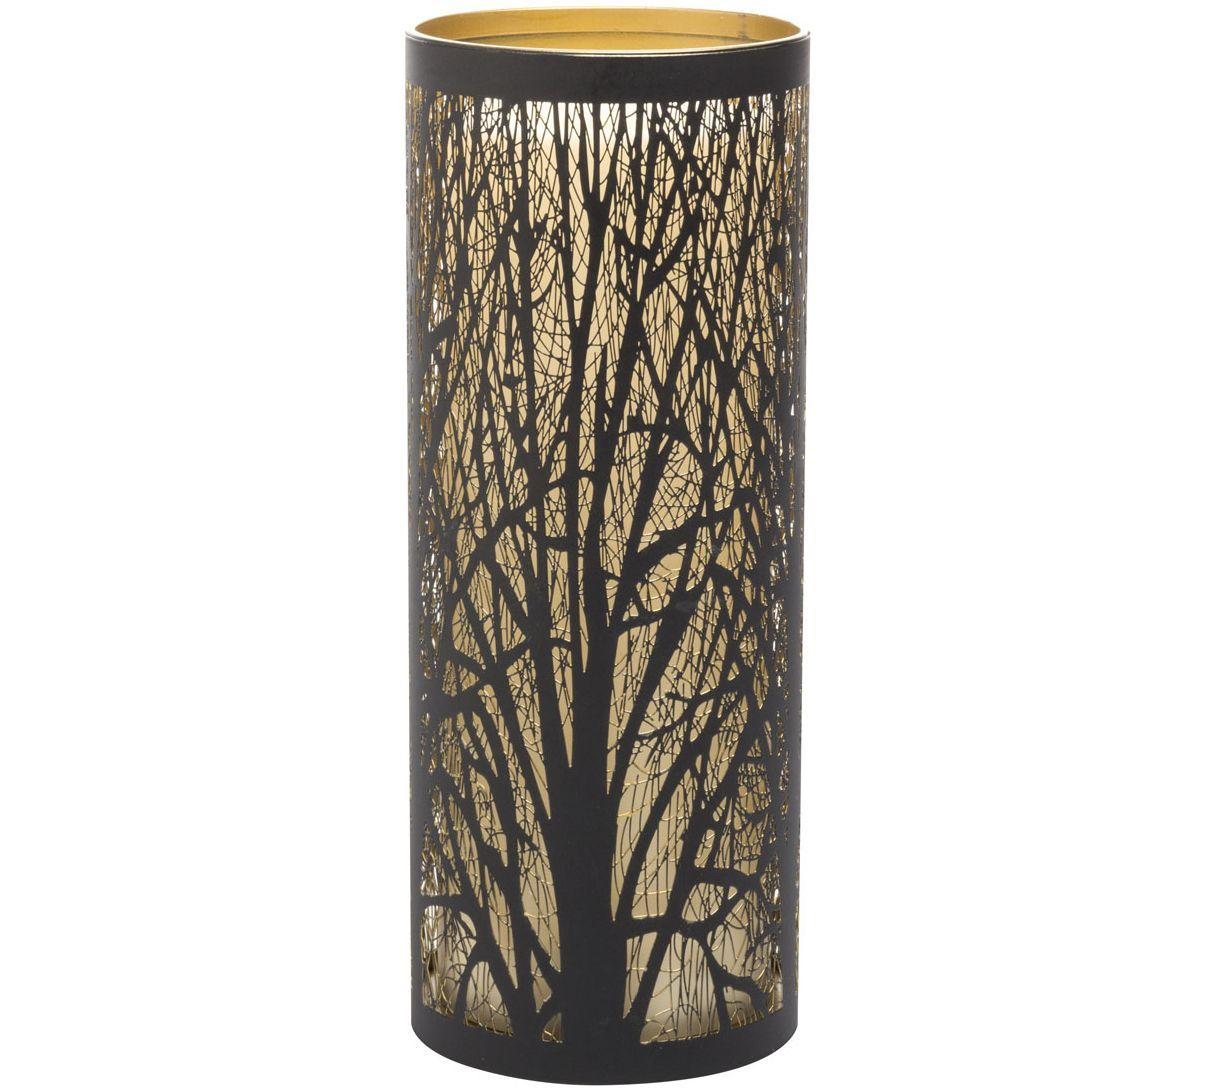 Flameless Candles With Timer By Candle Impressions Candle Wall Sconces Flameless Candles With Timer Sconces